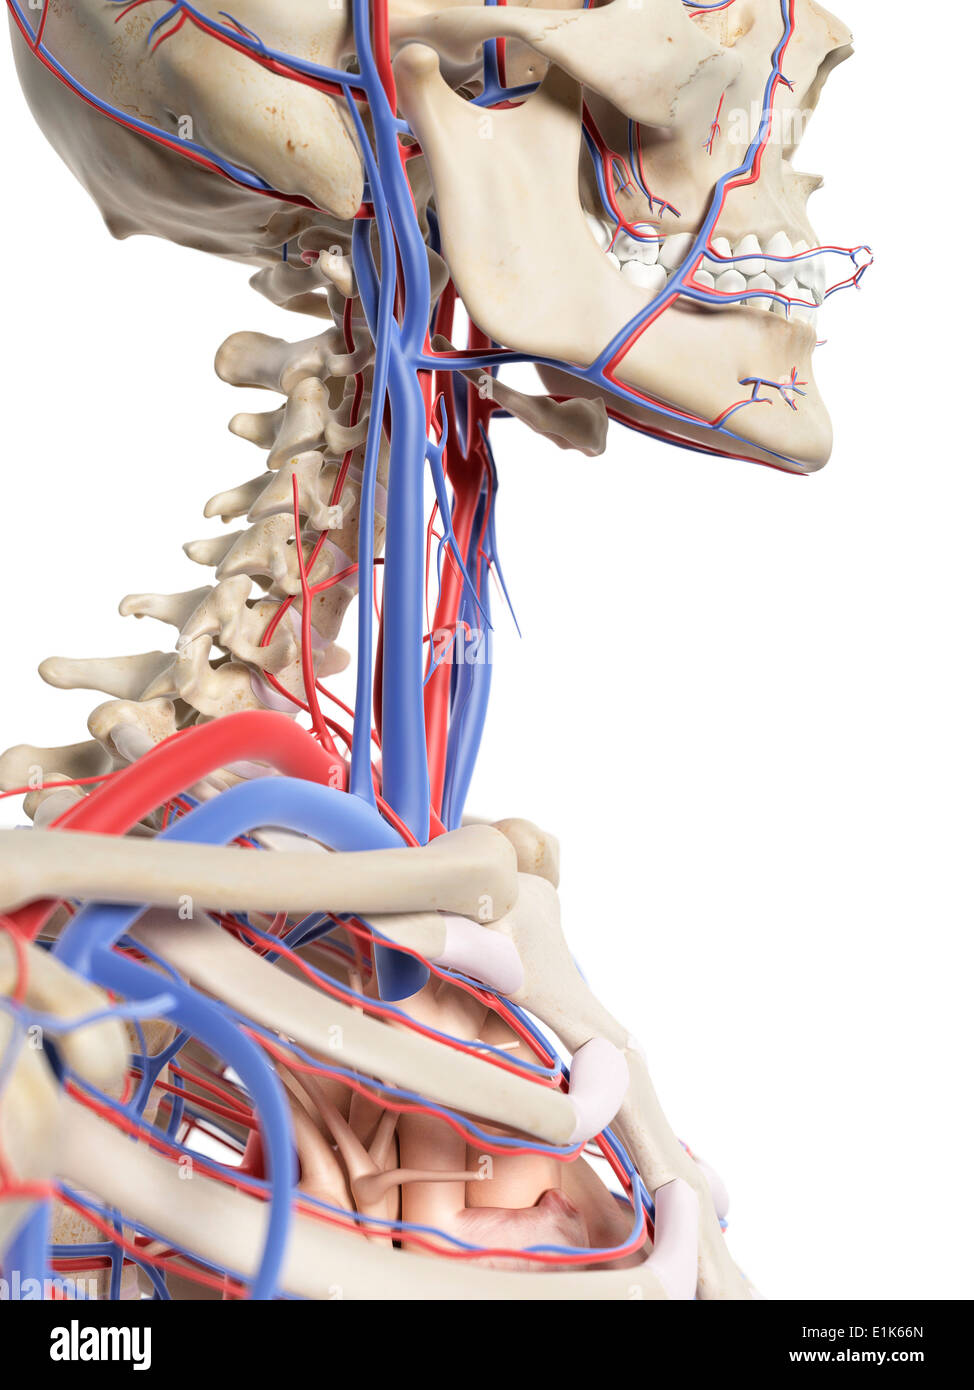 Blood Vessels Of The Neck Stock Photos & Blood Vessels Of The Neck ...